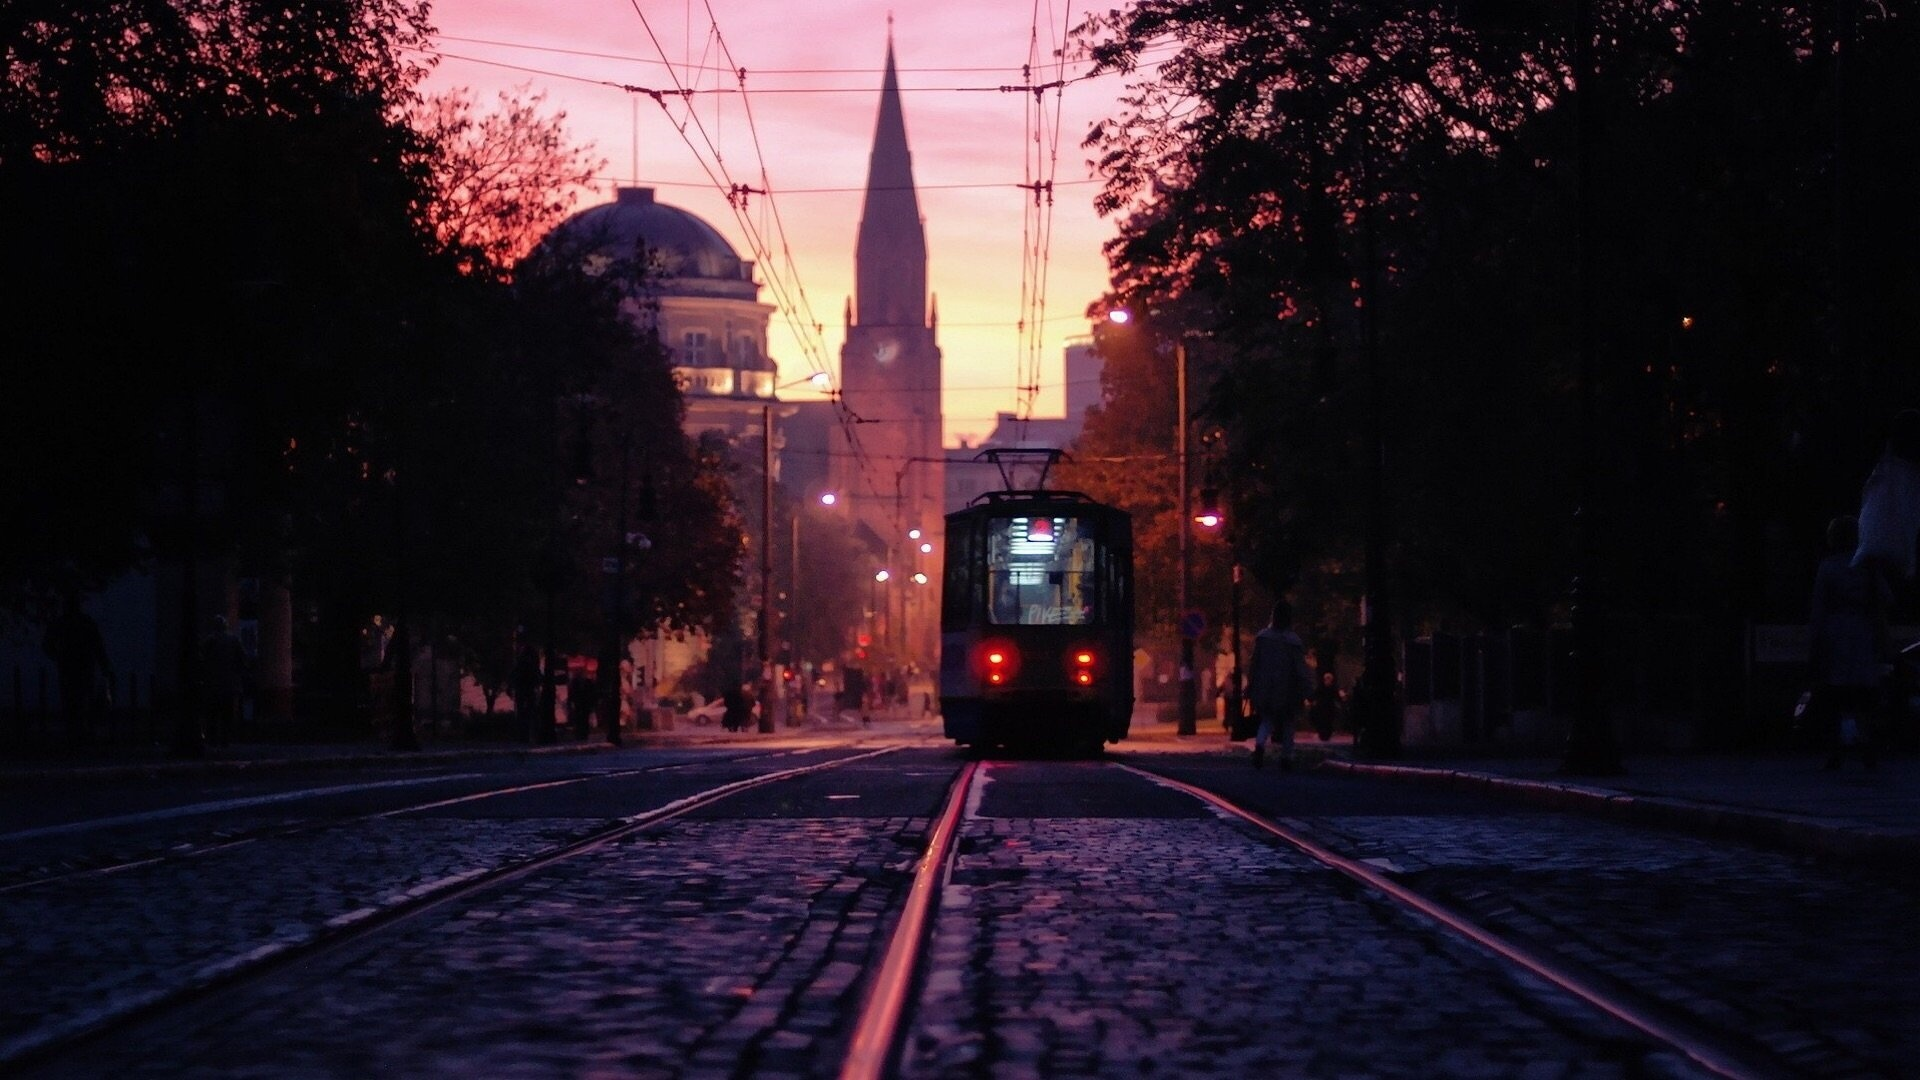 Tram wallpaper photo hd